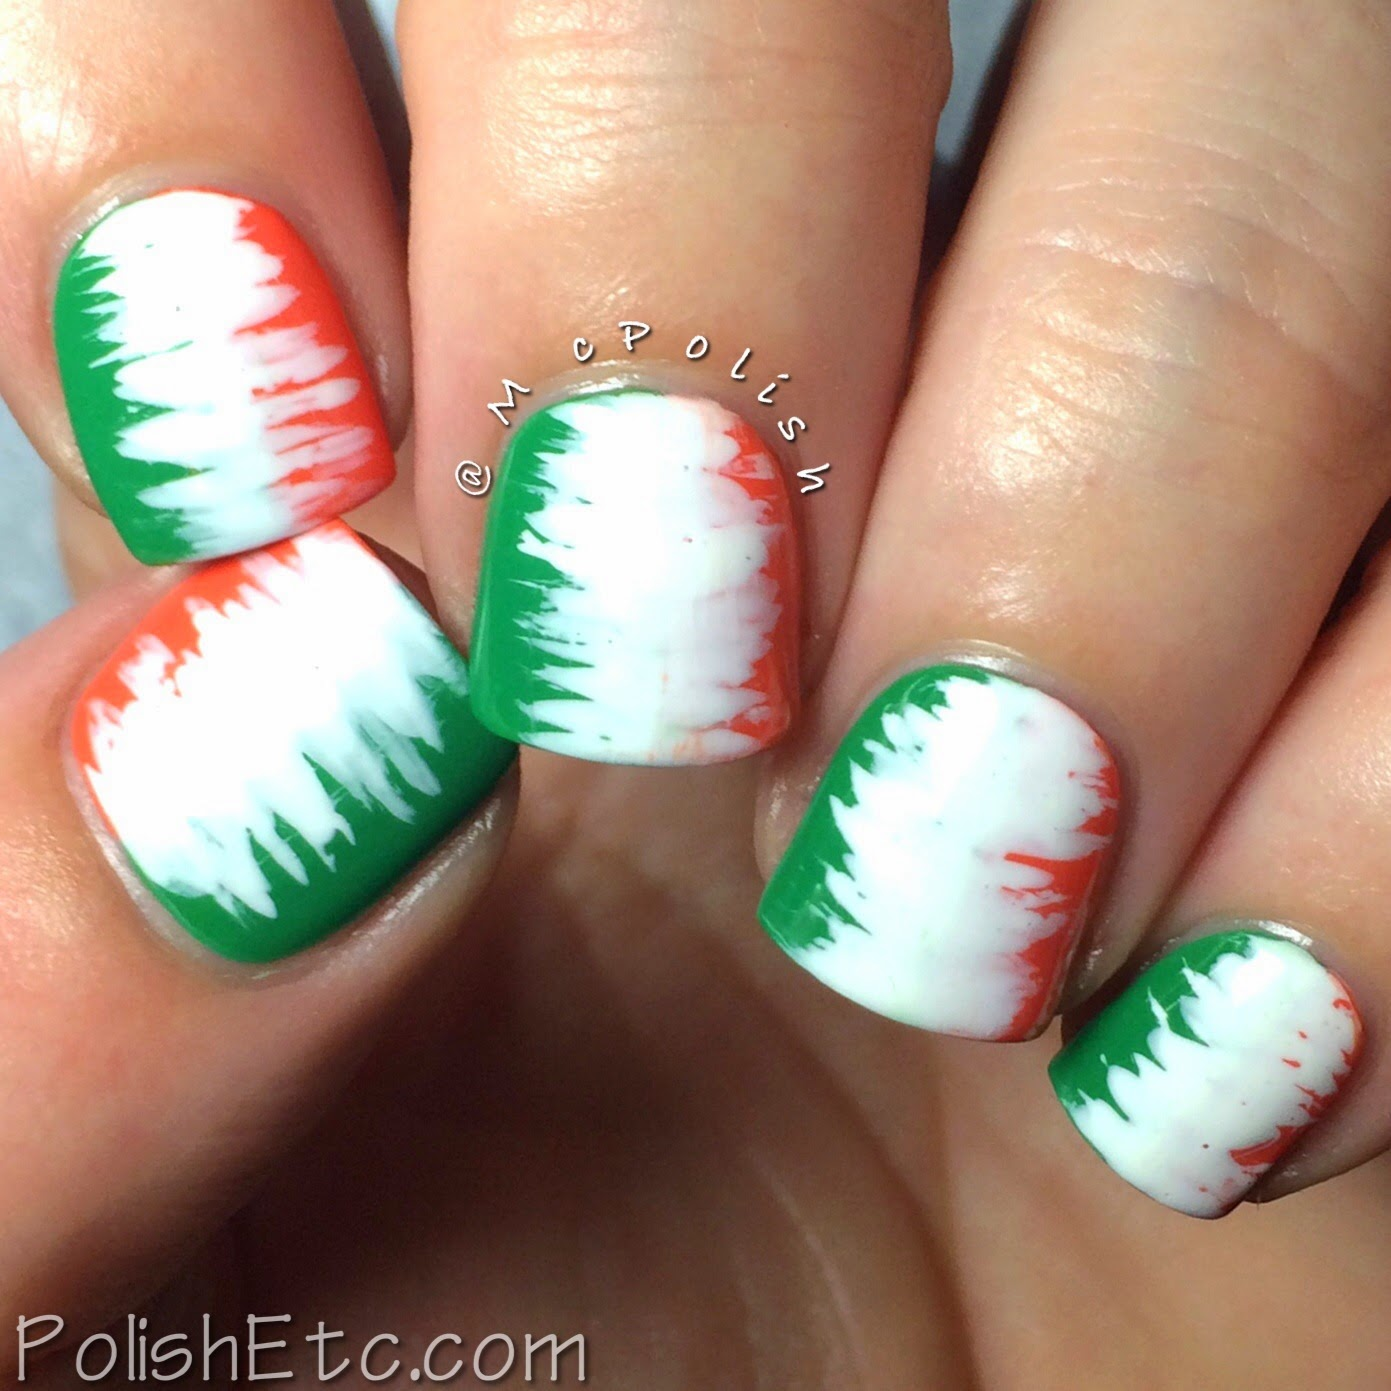 31 Day Nail Art Challenge -#31dc2014 - McPolish - FLAG